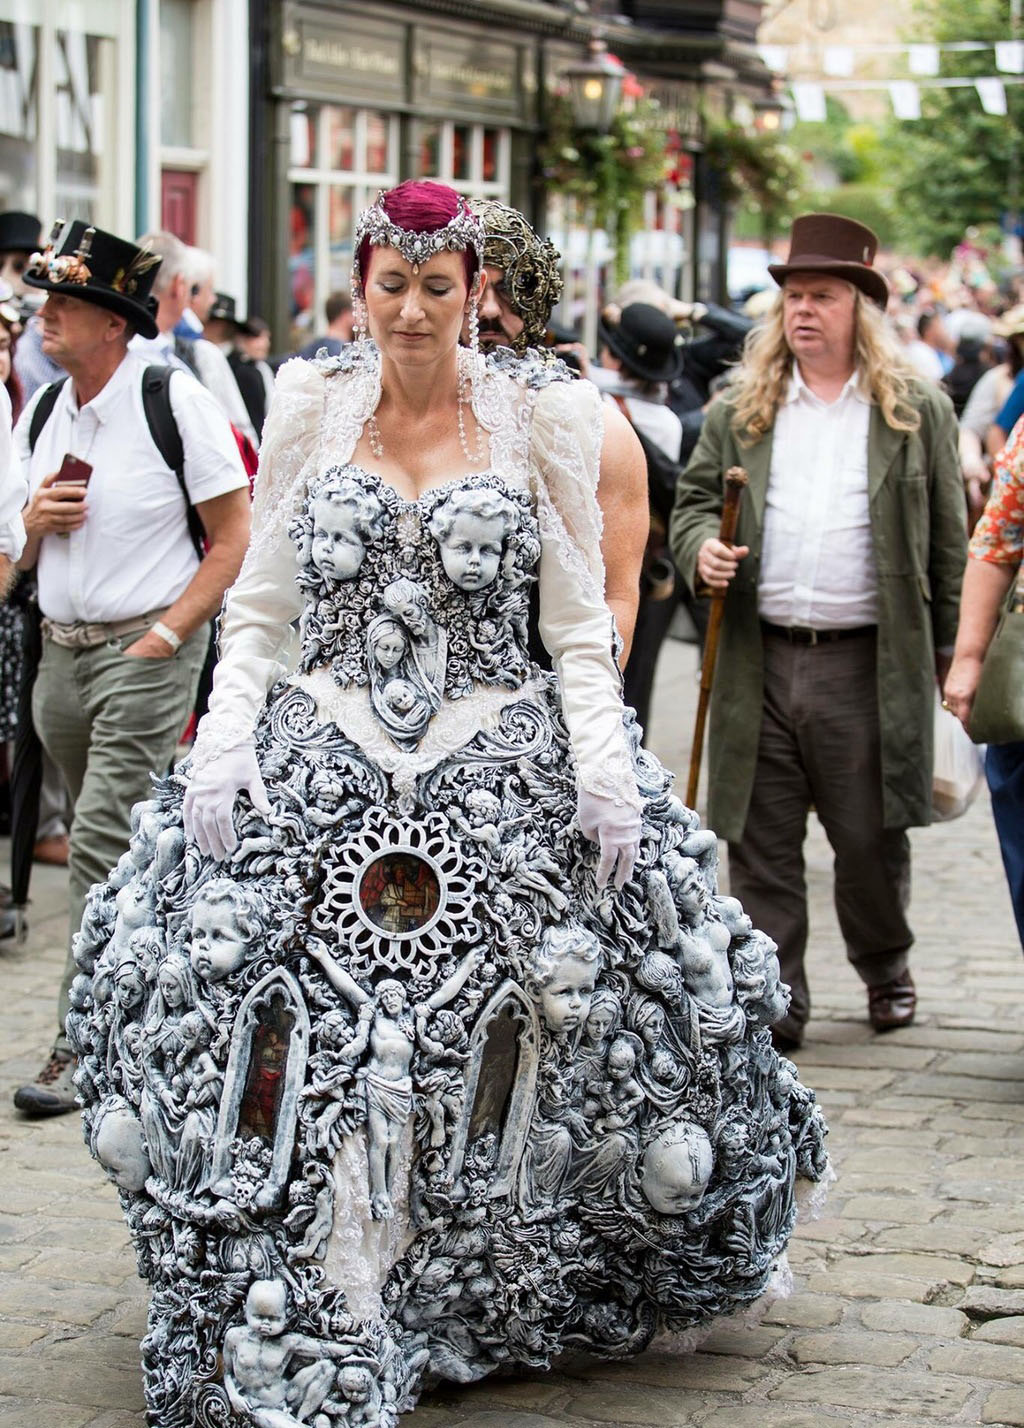 Woman's dress at steampunk festival